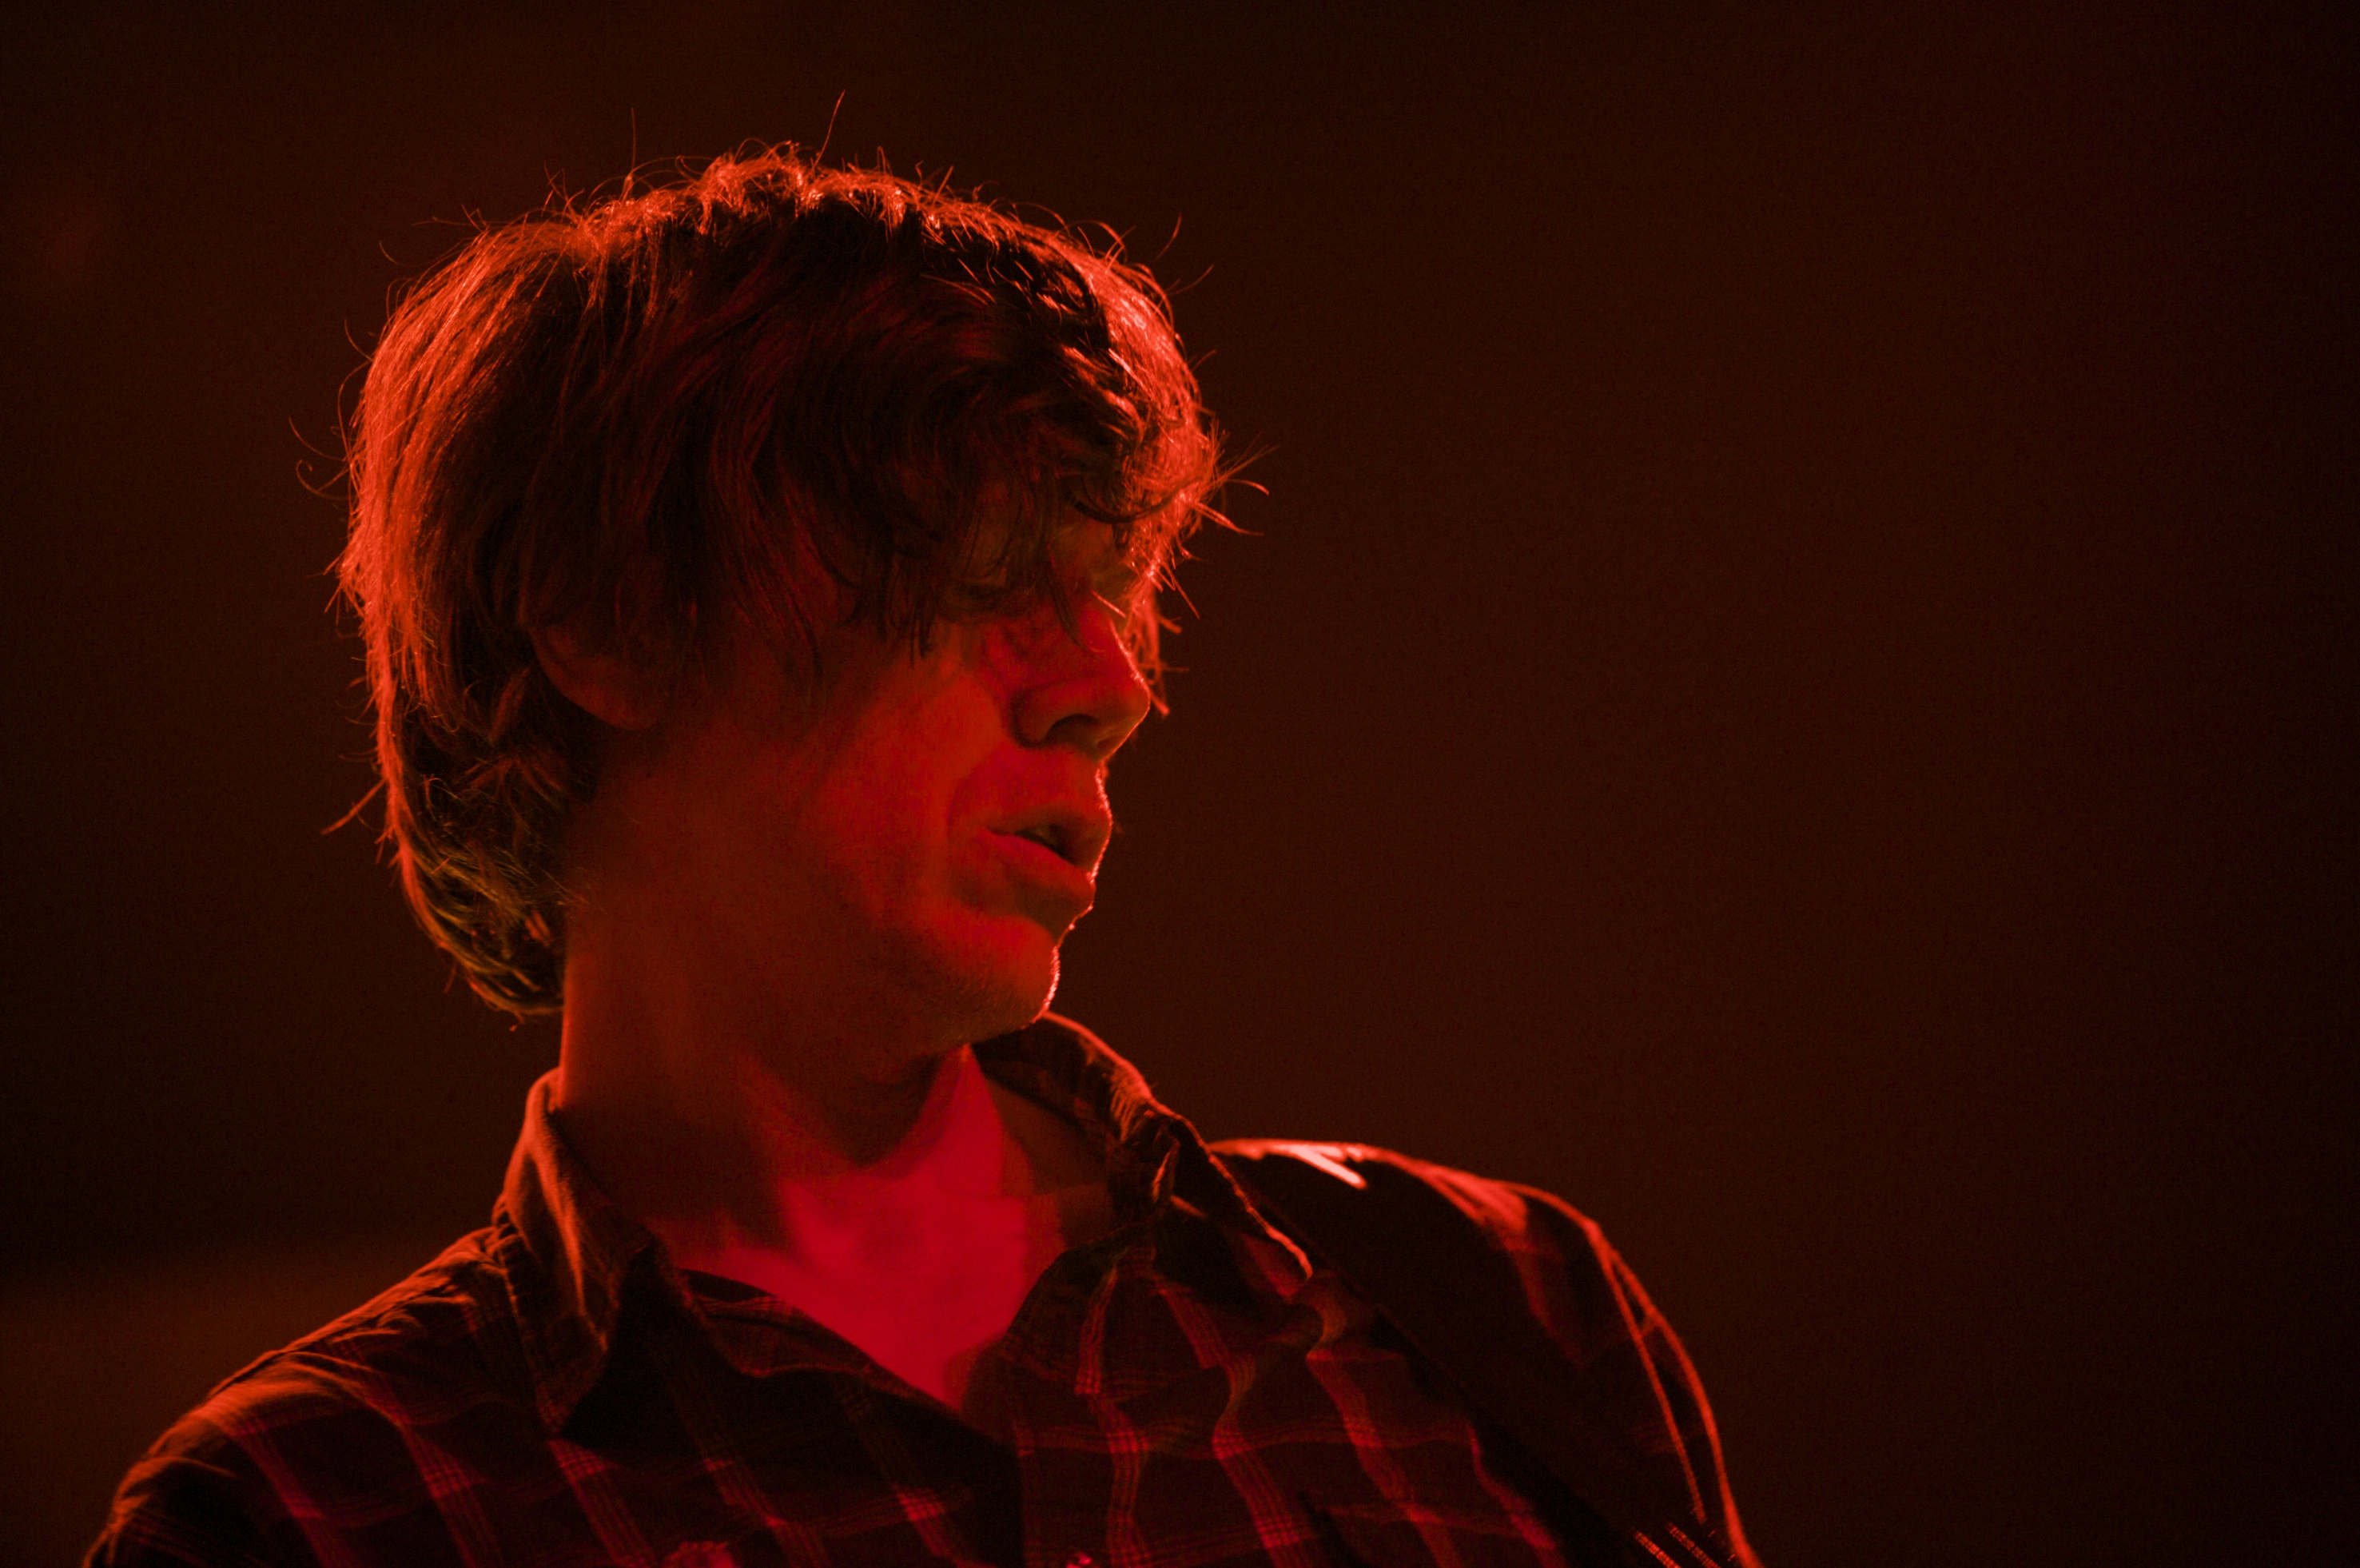 MADRID, SPAIN - APRIL 19:  Thurston Moore of Sonic Youth perfoms on stage at La Riviera on April 19, 2010 in Madrid, Spain.